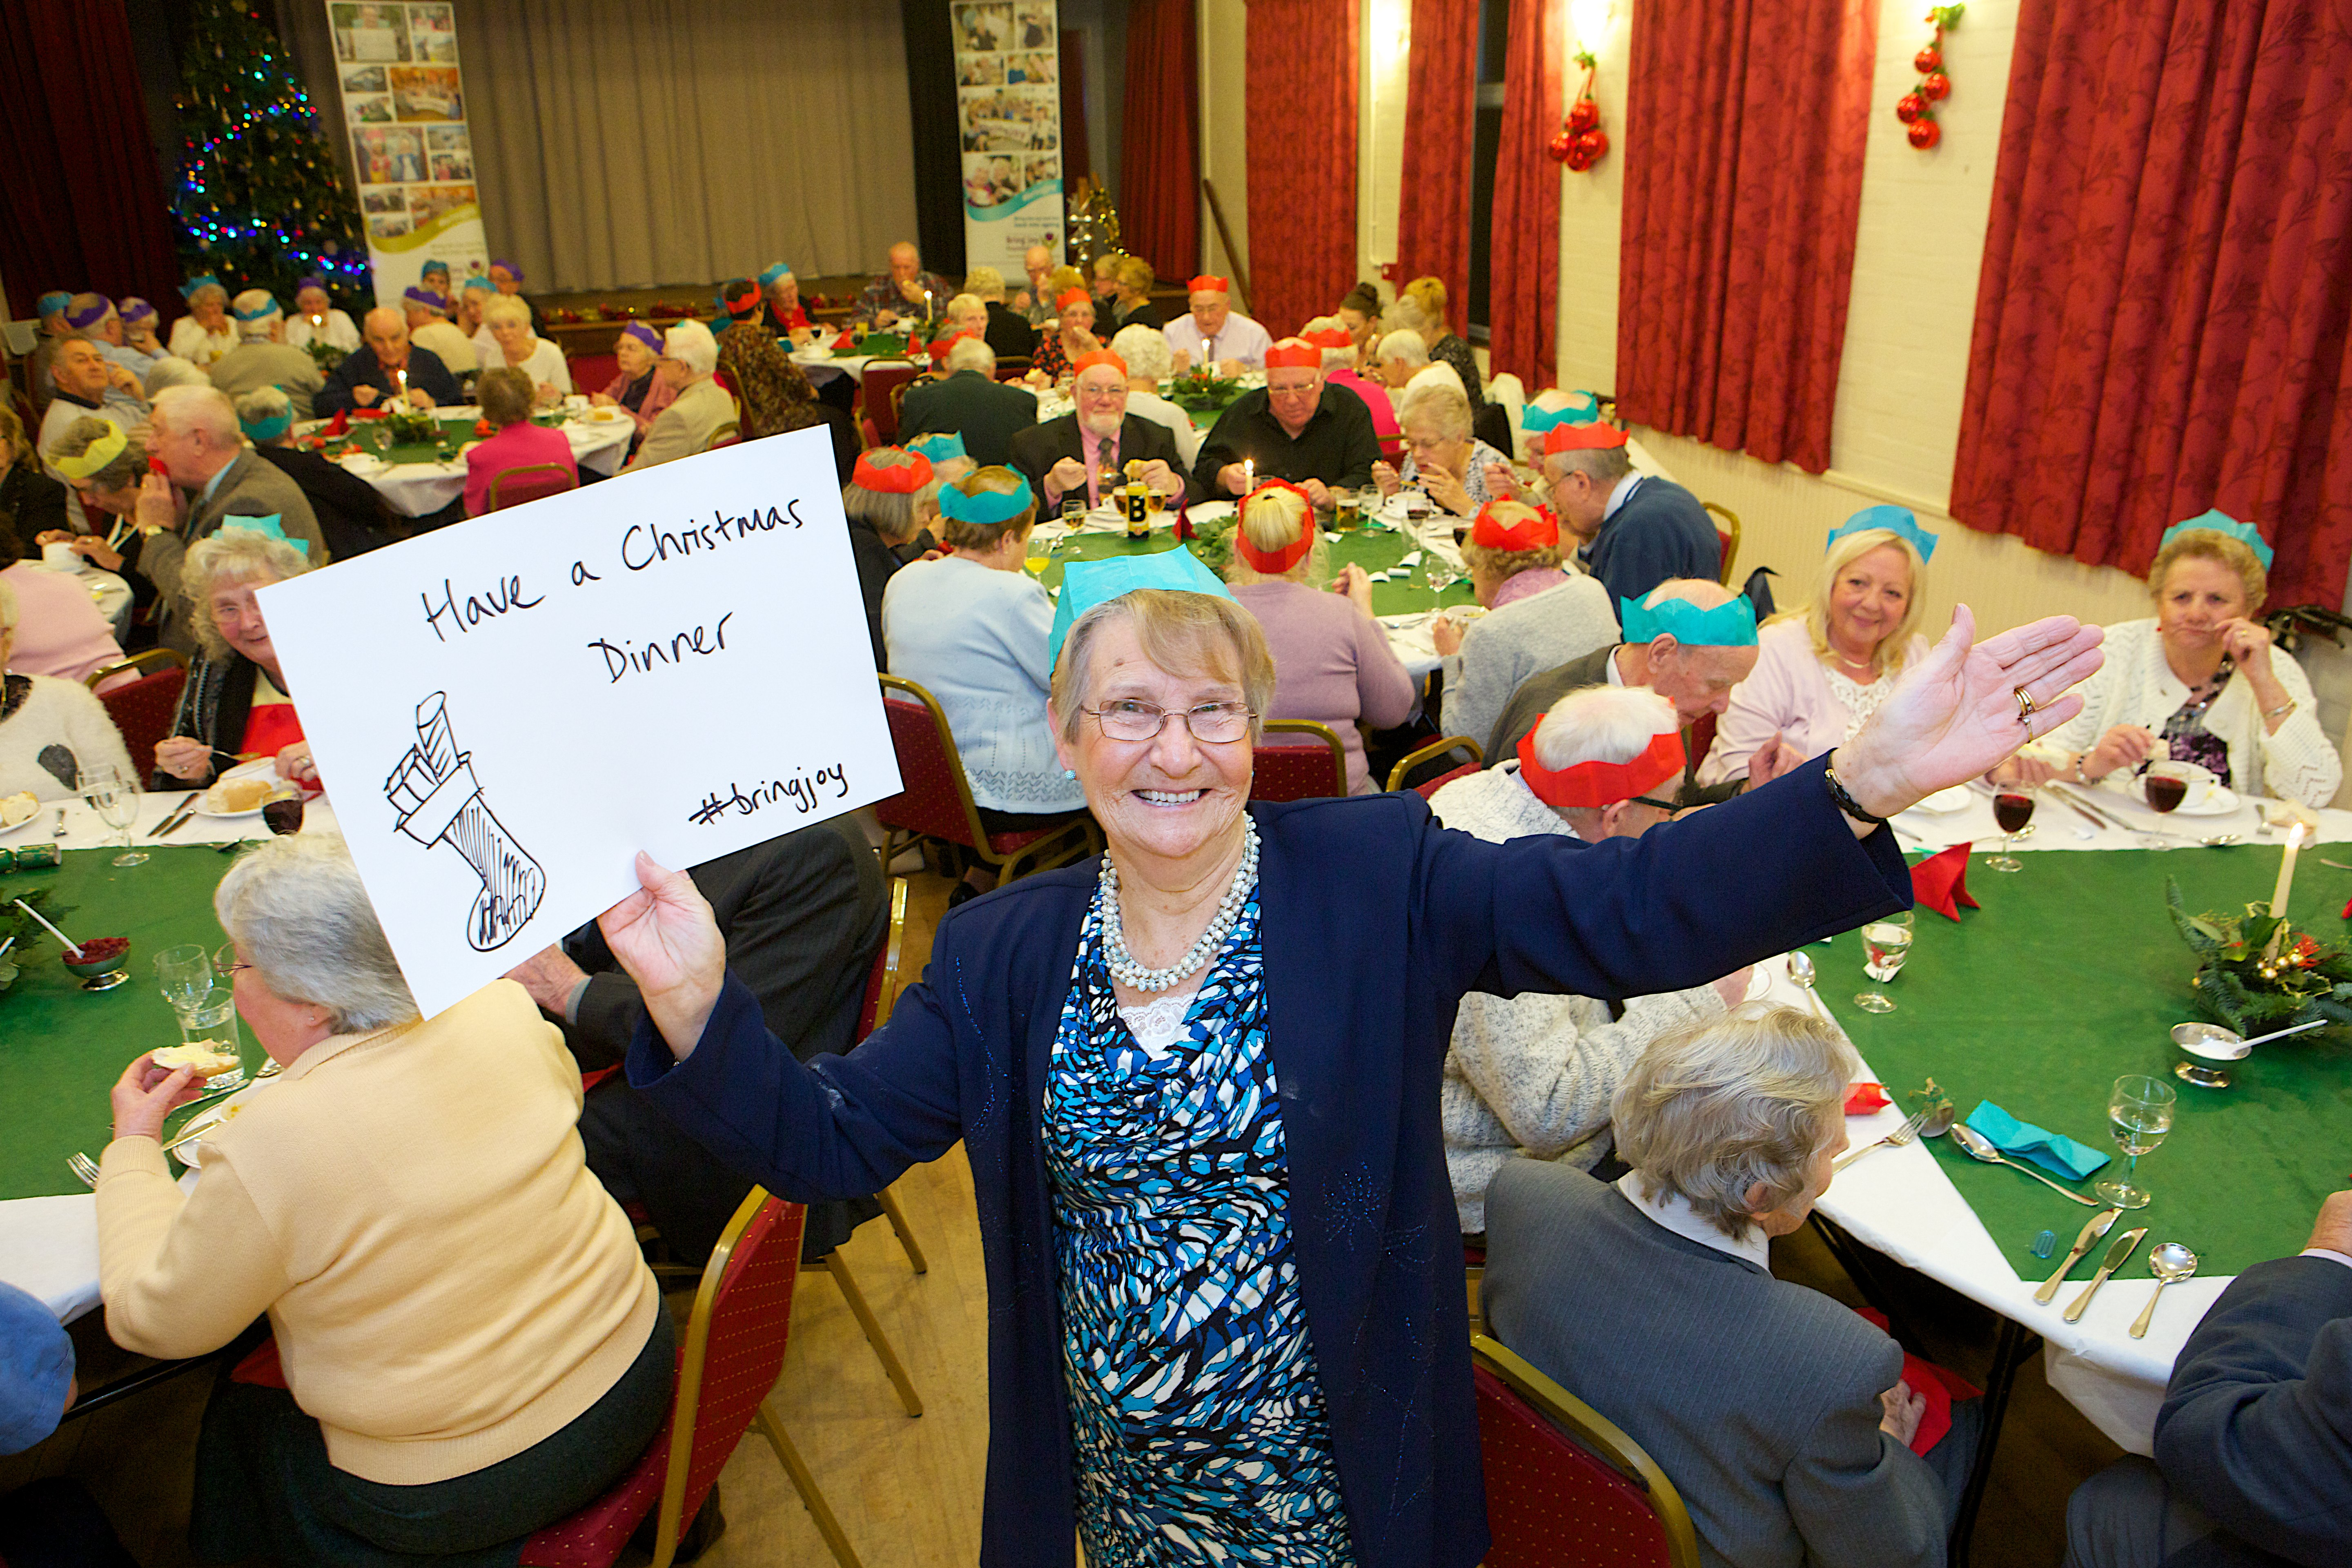 Sandbach resident Mary Goode with a #bringjoy festive wish on a message board